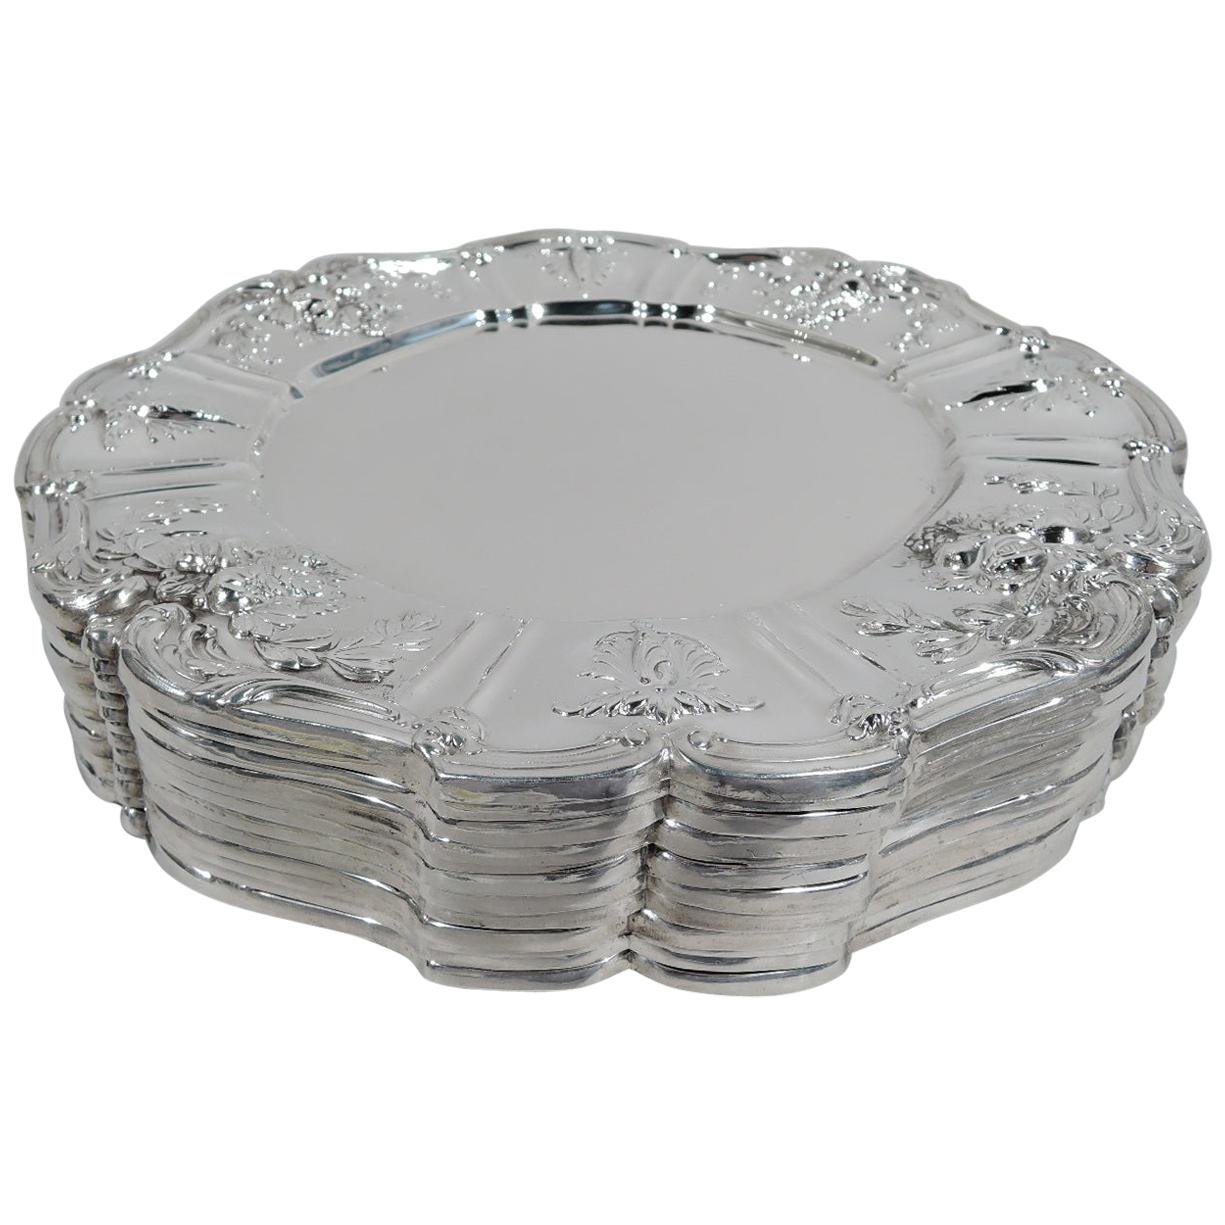 Set of 12 Reed & Barton Francis I Sterling Silver Dinner Plates